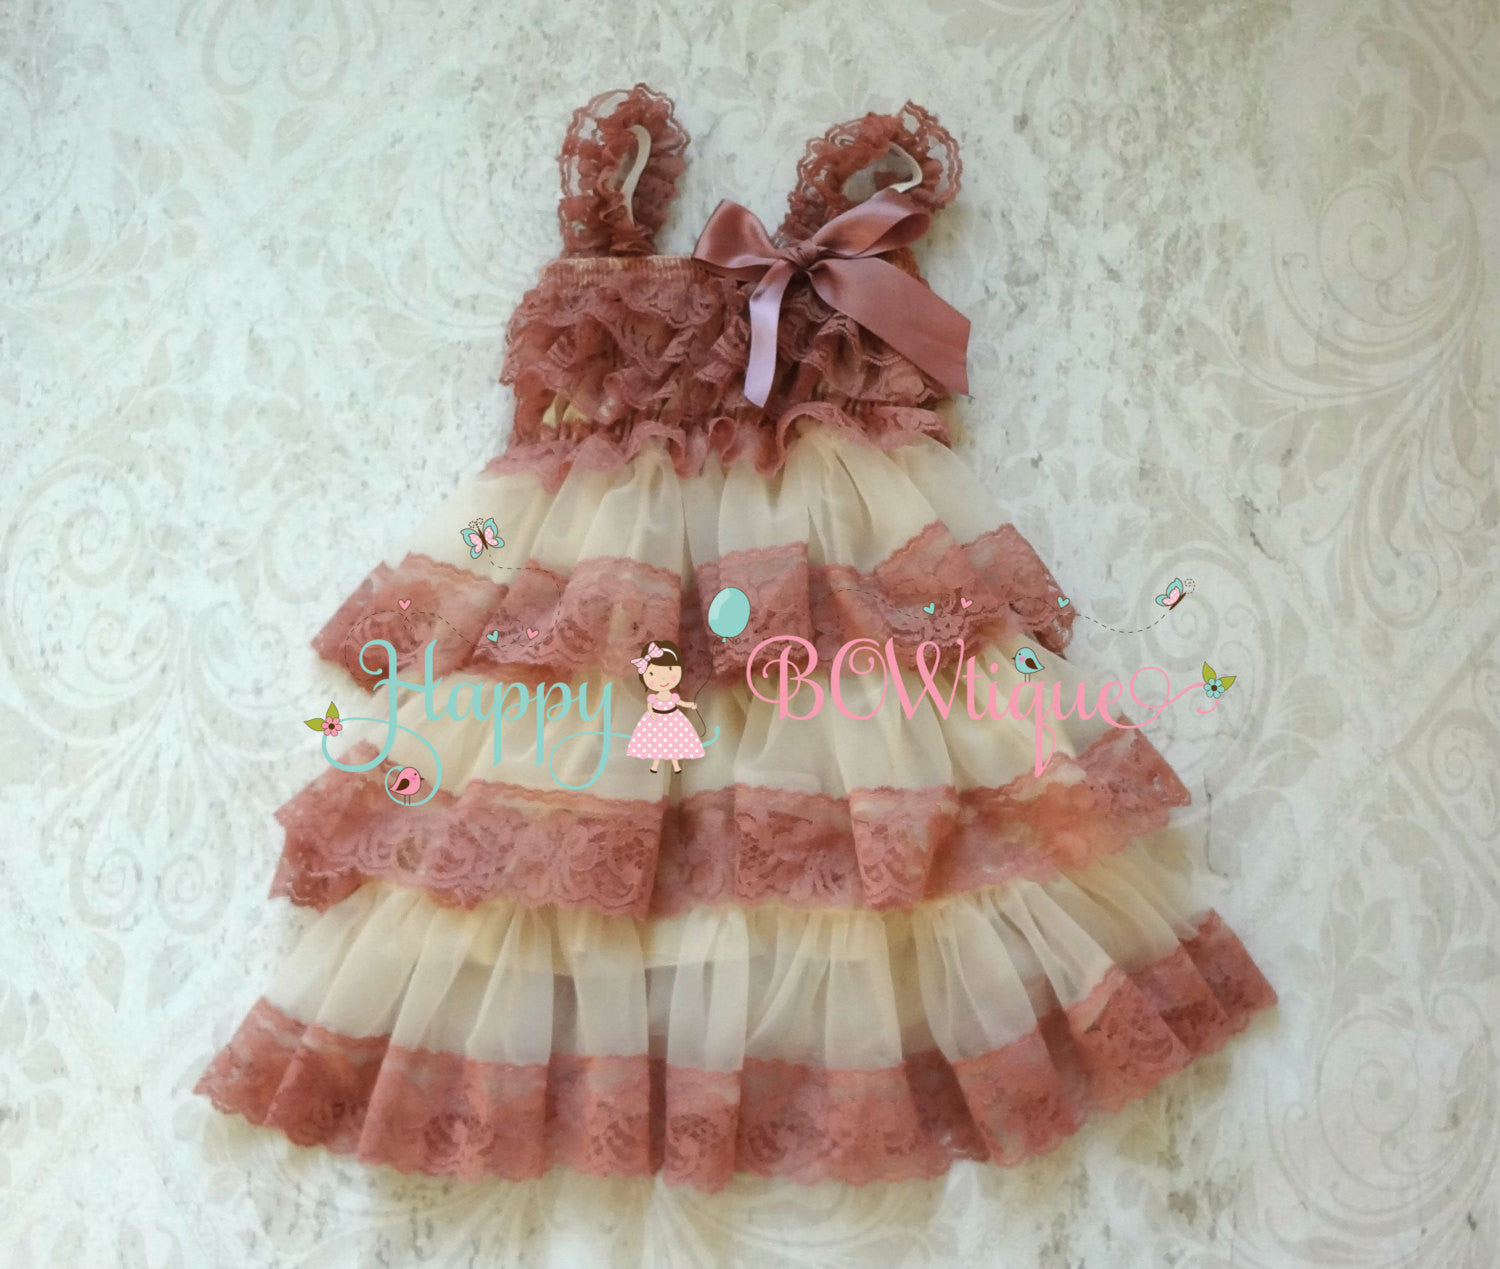 Embellished Champagne Rose Chiffon Lace Dress / Girl's Dusty Rose Dress - Happy BOWtique - children's clothing, Baby Girl clothing